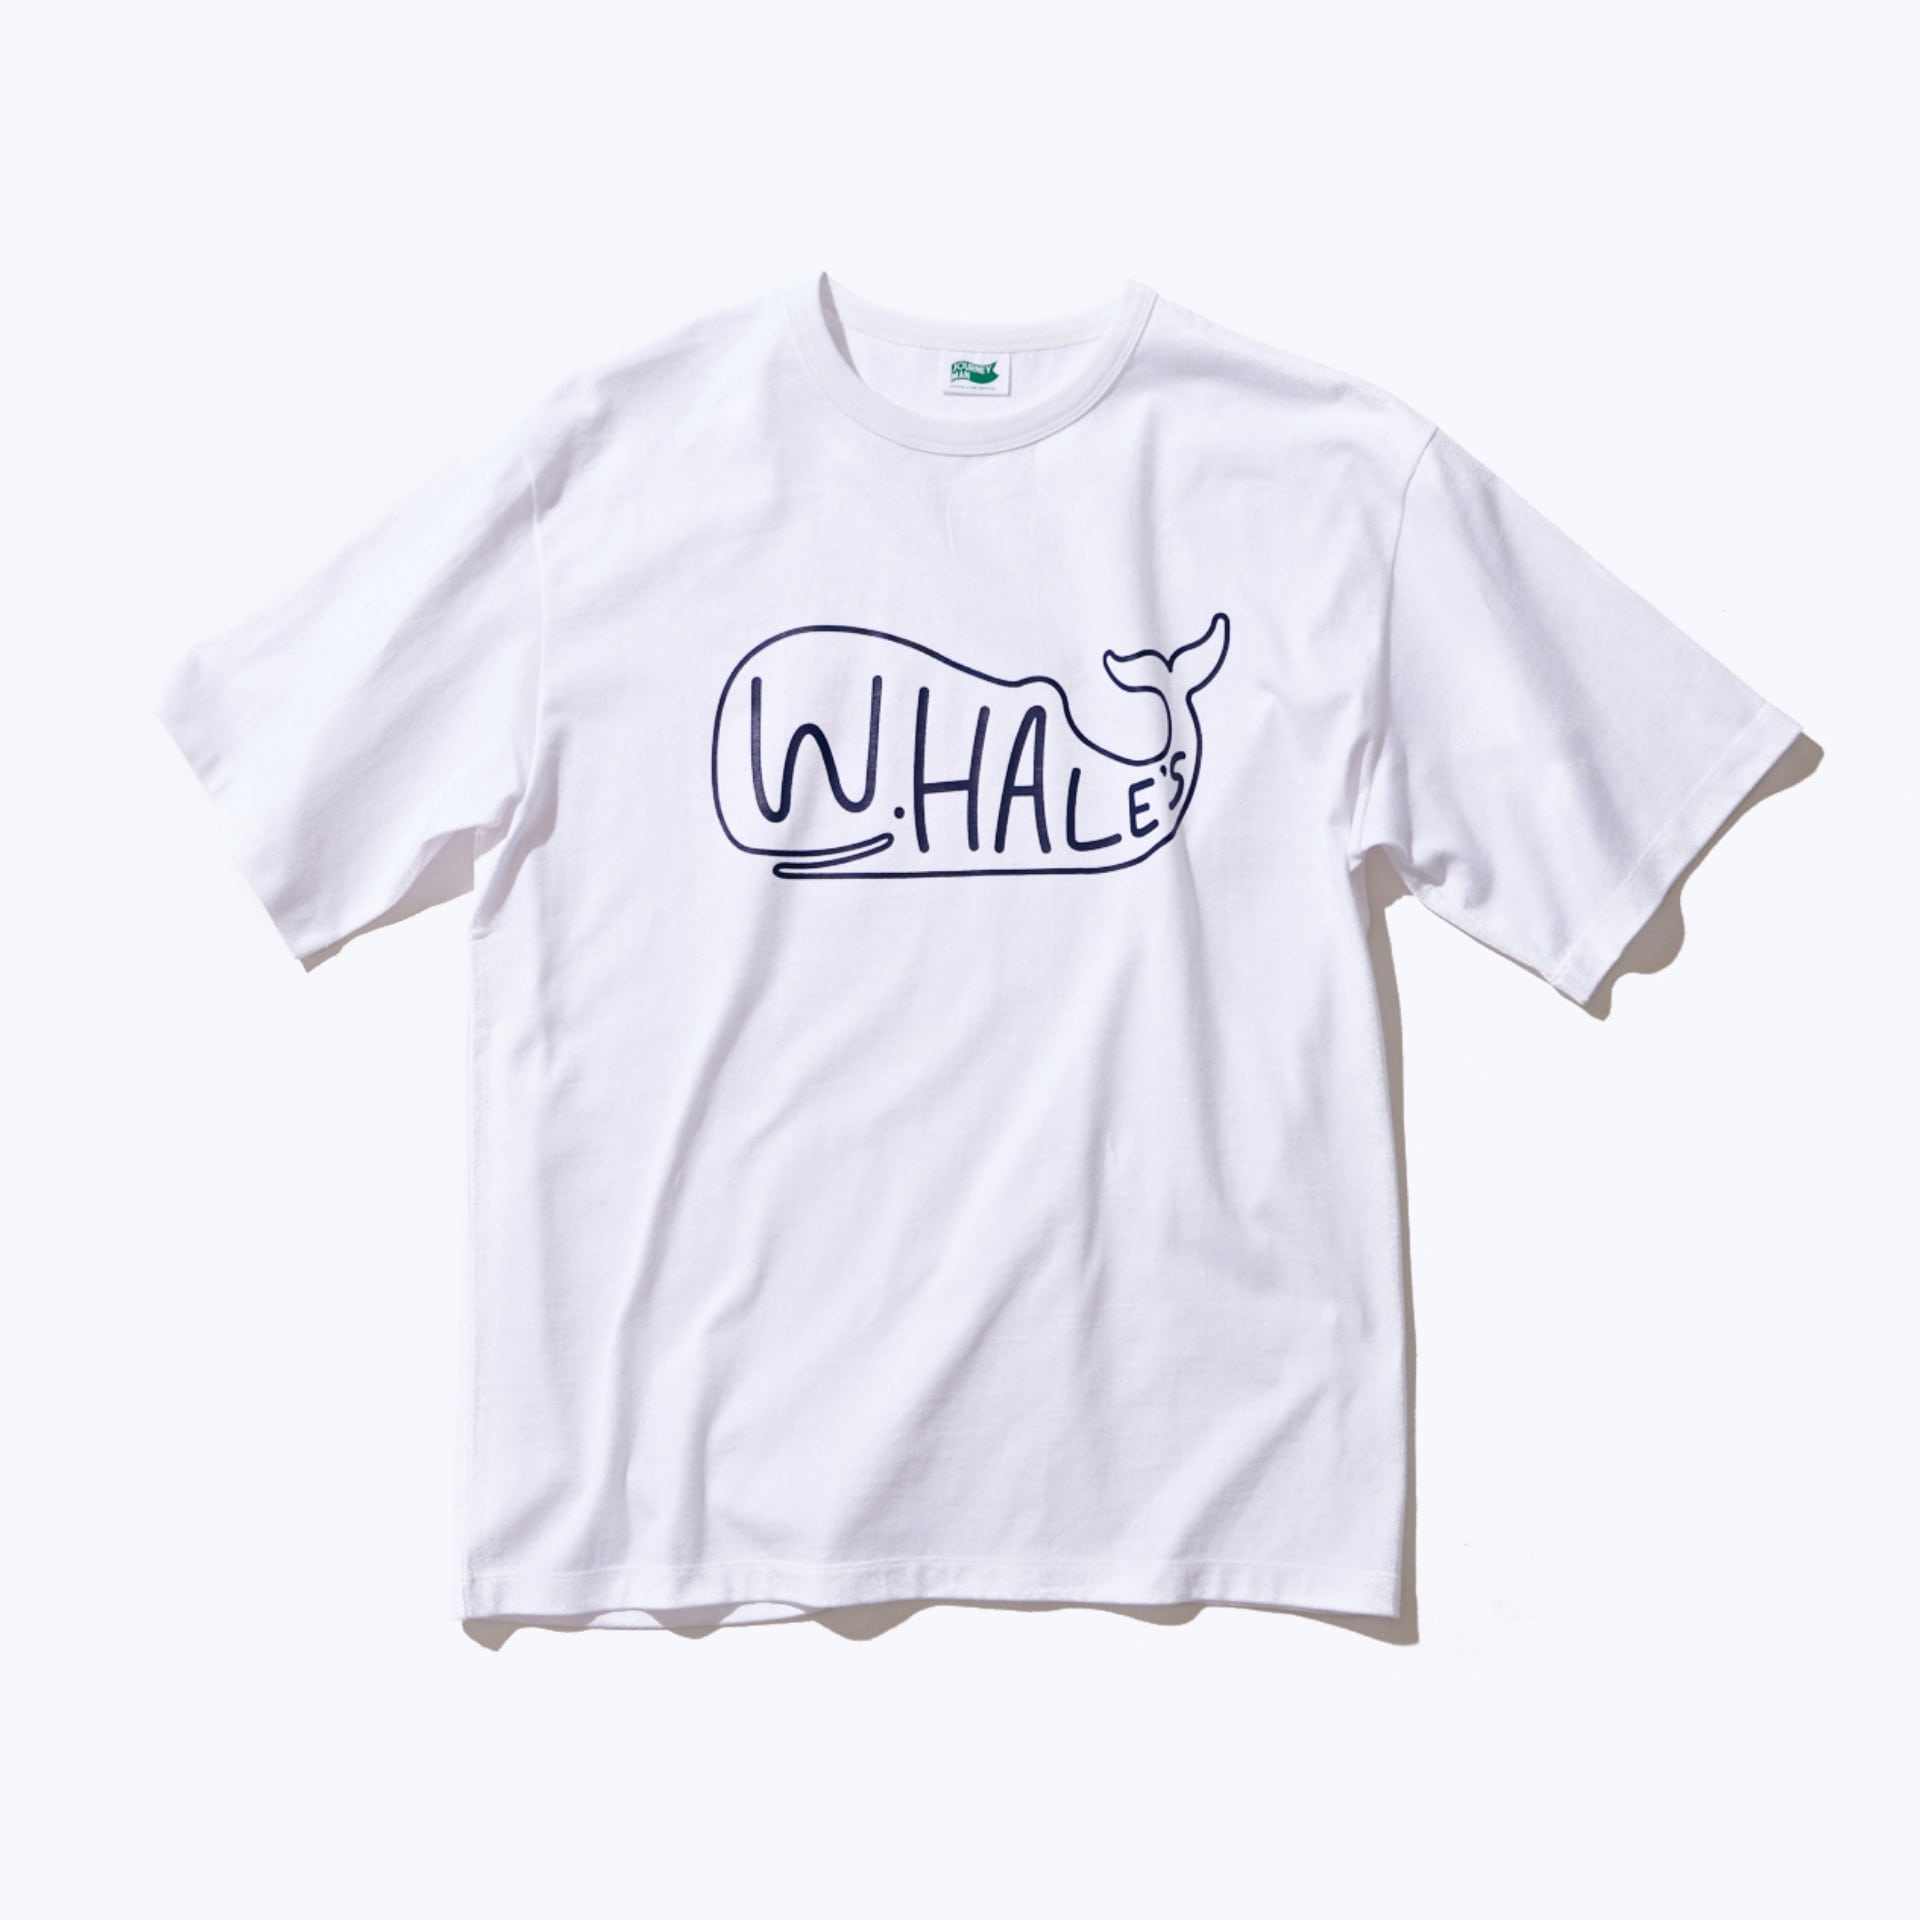 WHALE'S BIG LOGO T-SHIRT (WHITE)